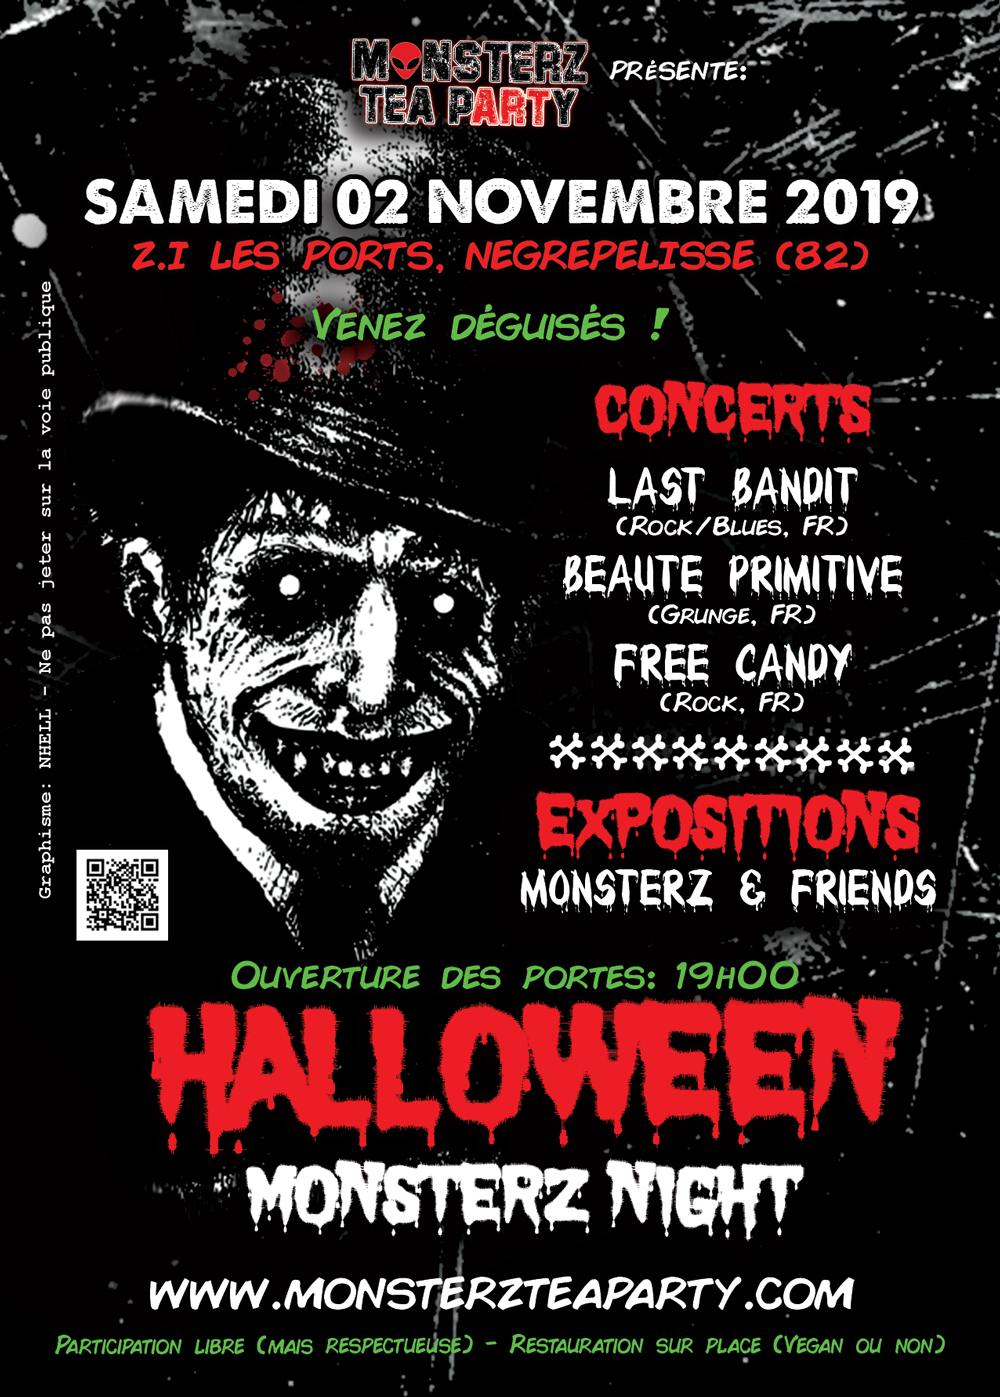 Soirée Halloween à la galerie des Monsterz Tea Party